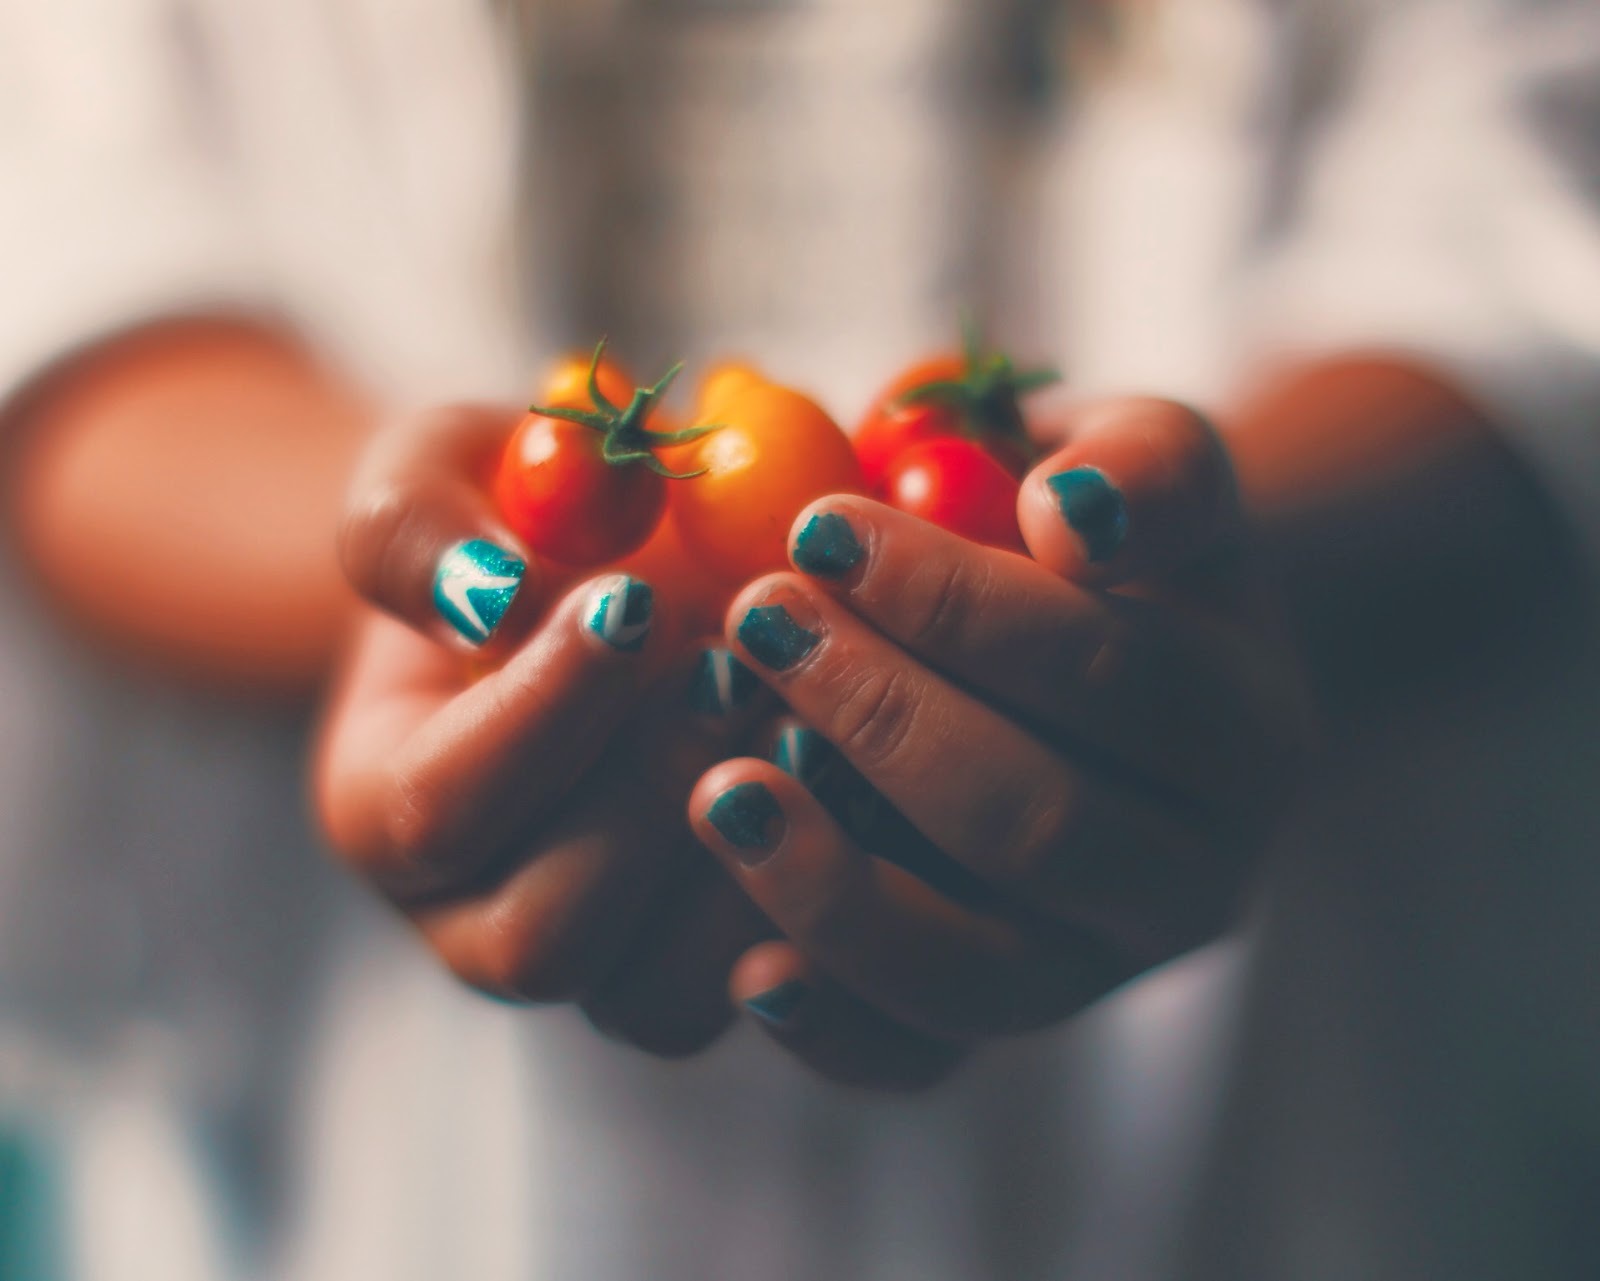 tomatoes in hands fingernails painted